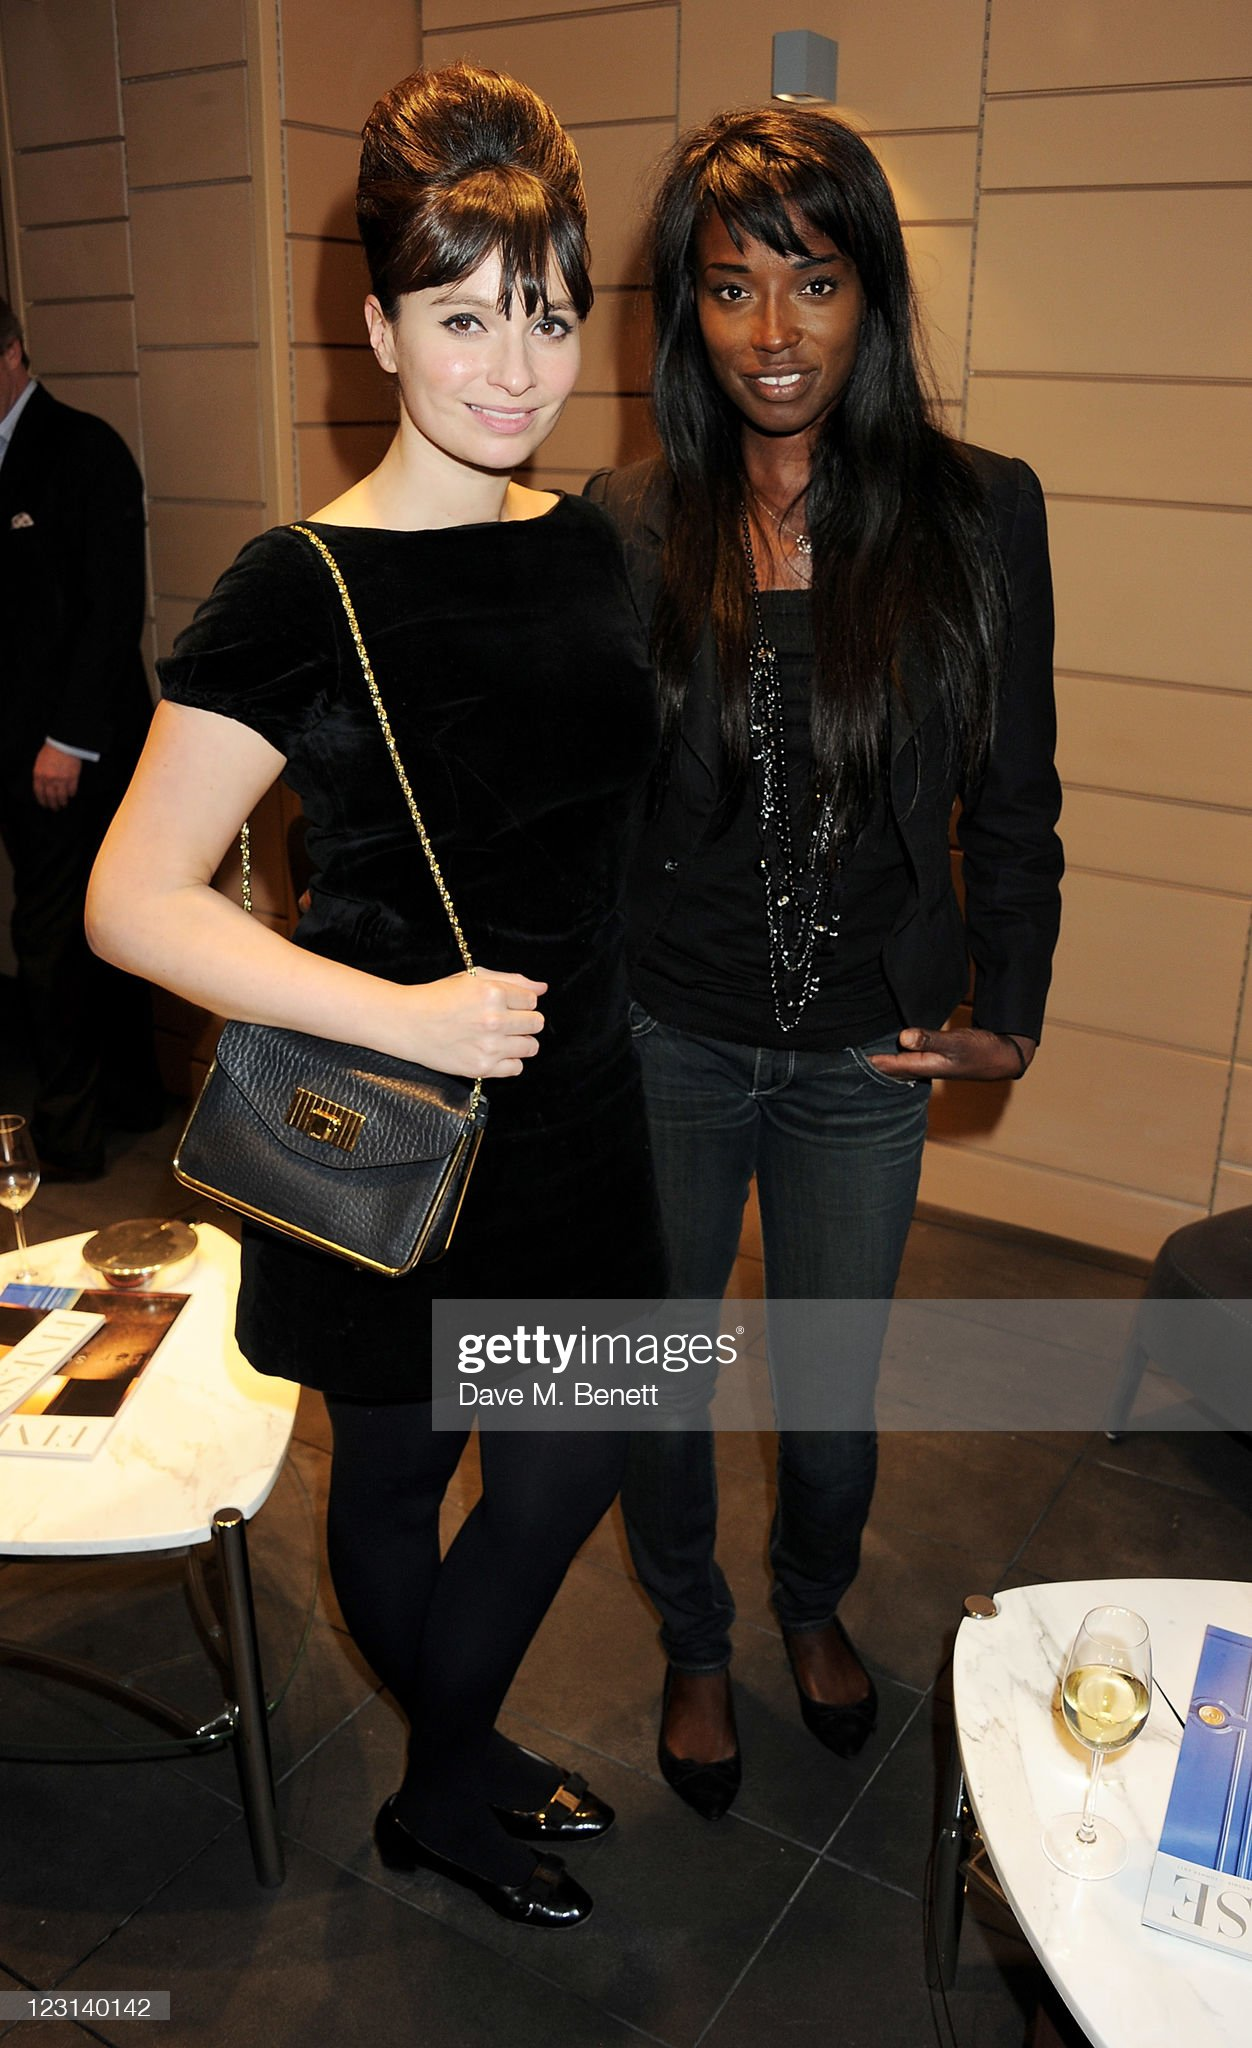 ¿Cuánto mide Lorraine Pascale? - Altura - Real height Gizzi-erskine-and-lorraine-pascale-attend-the-launch-of-the-french-picture-id123140142?s=2048x2048